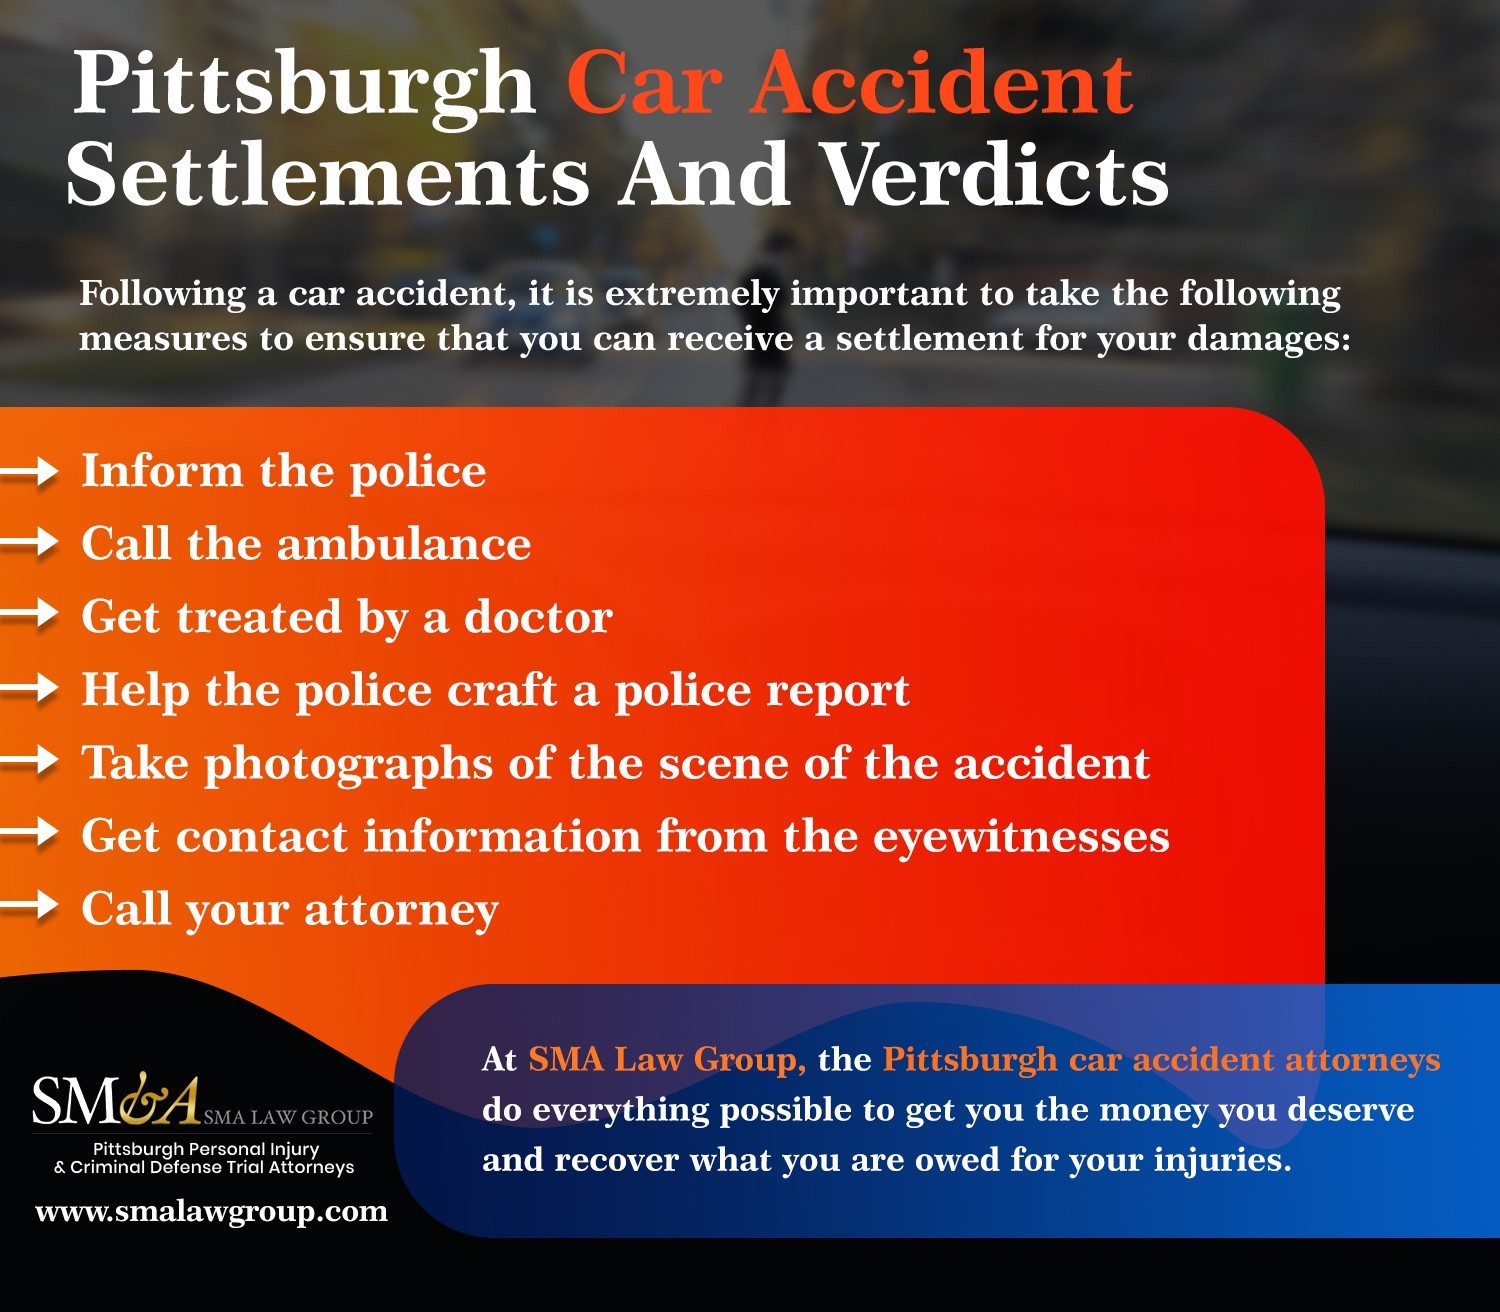 Pittsburgh Car Accident Settlements And Verdicts